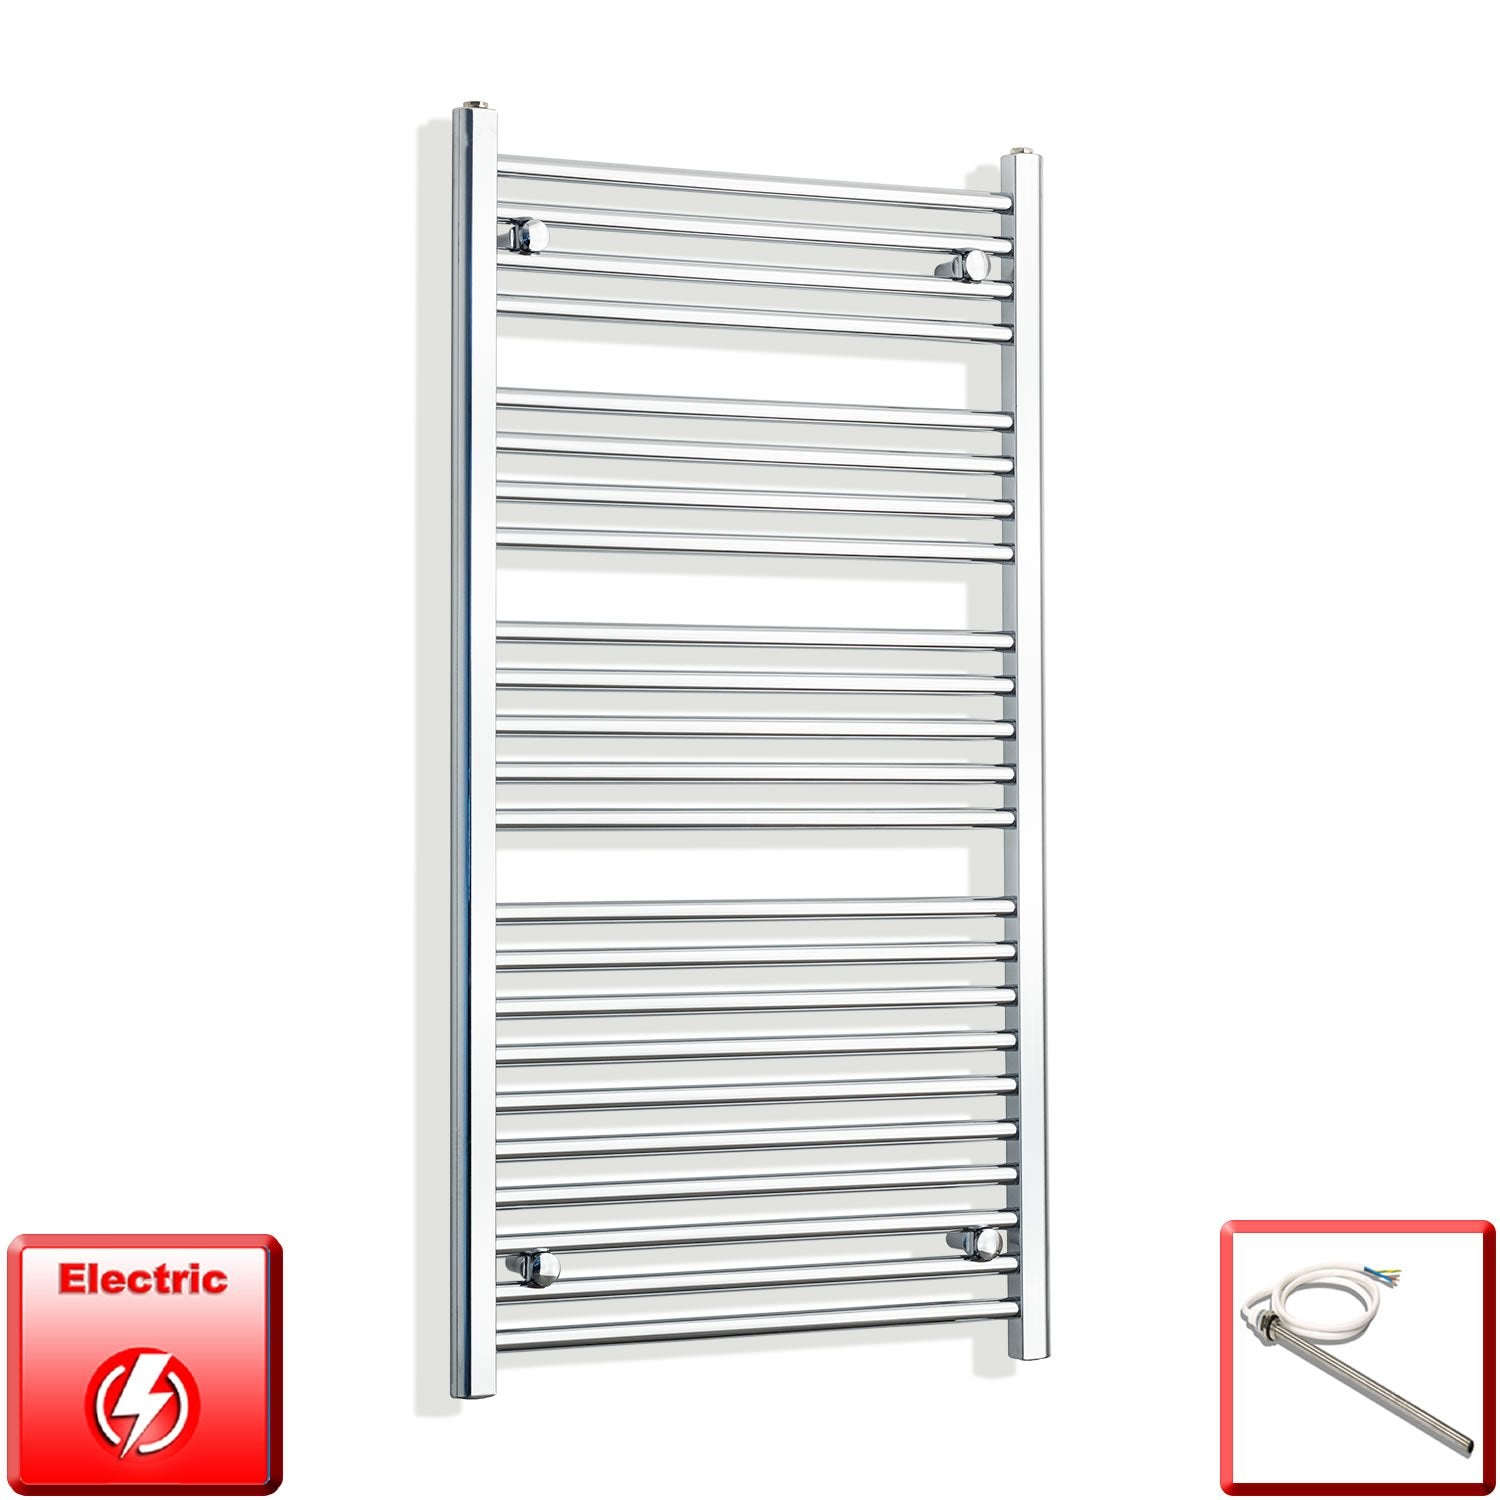 650mm Wide 1200mm High Flat Chrome Pre-Filled Electric Heated Towel Rail Radiator HTR,Single Heat Element